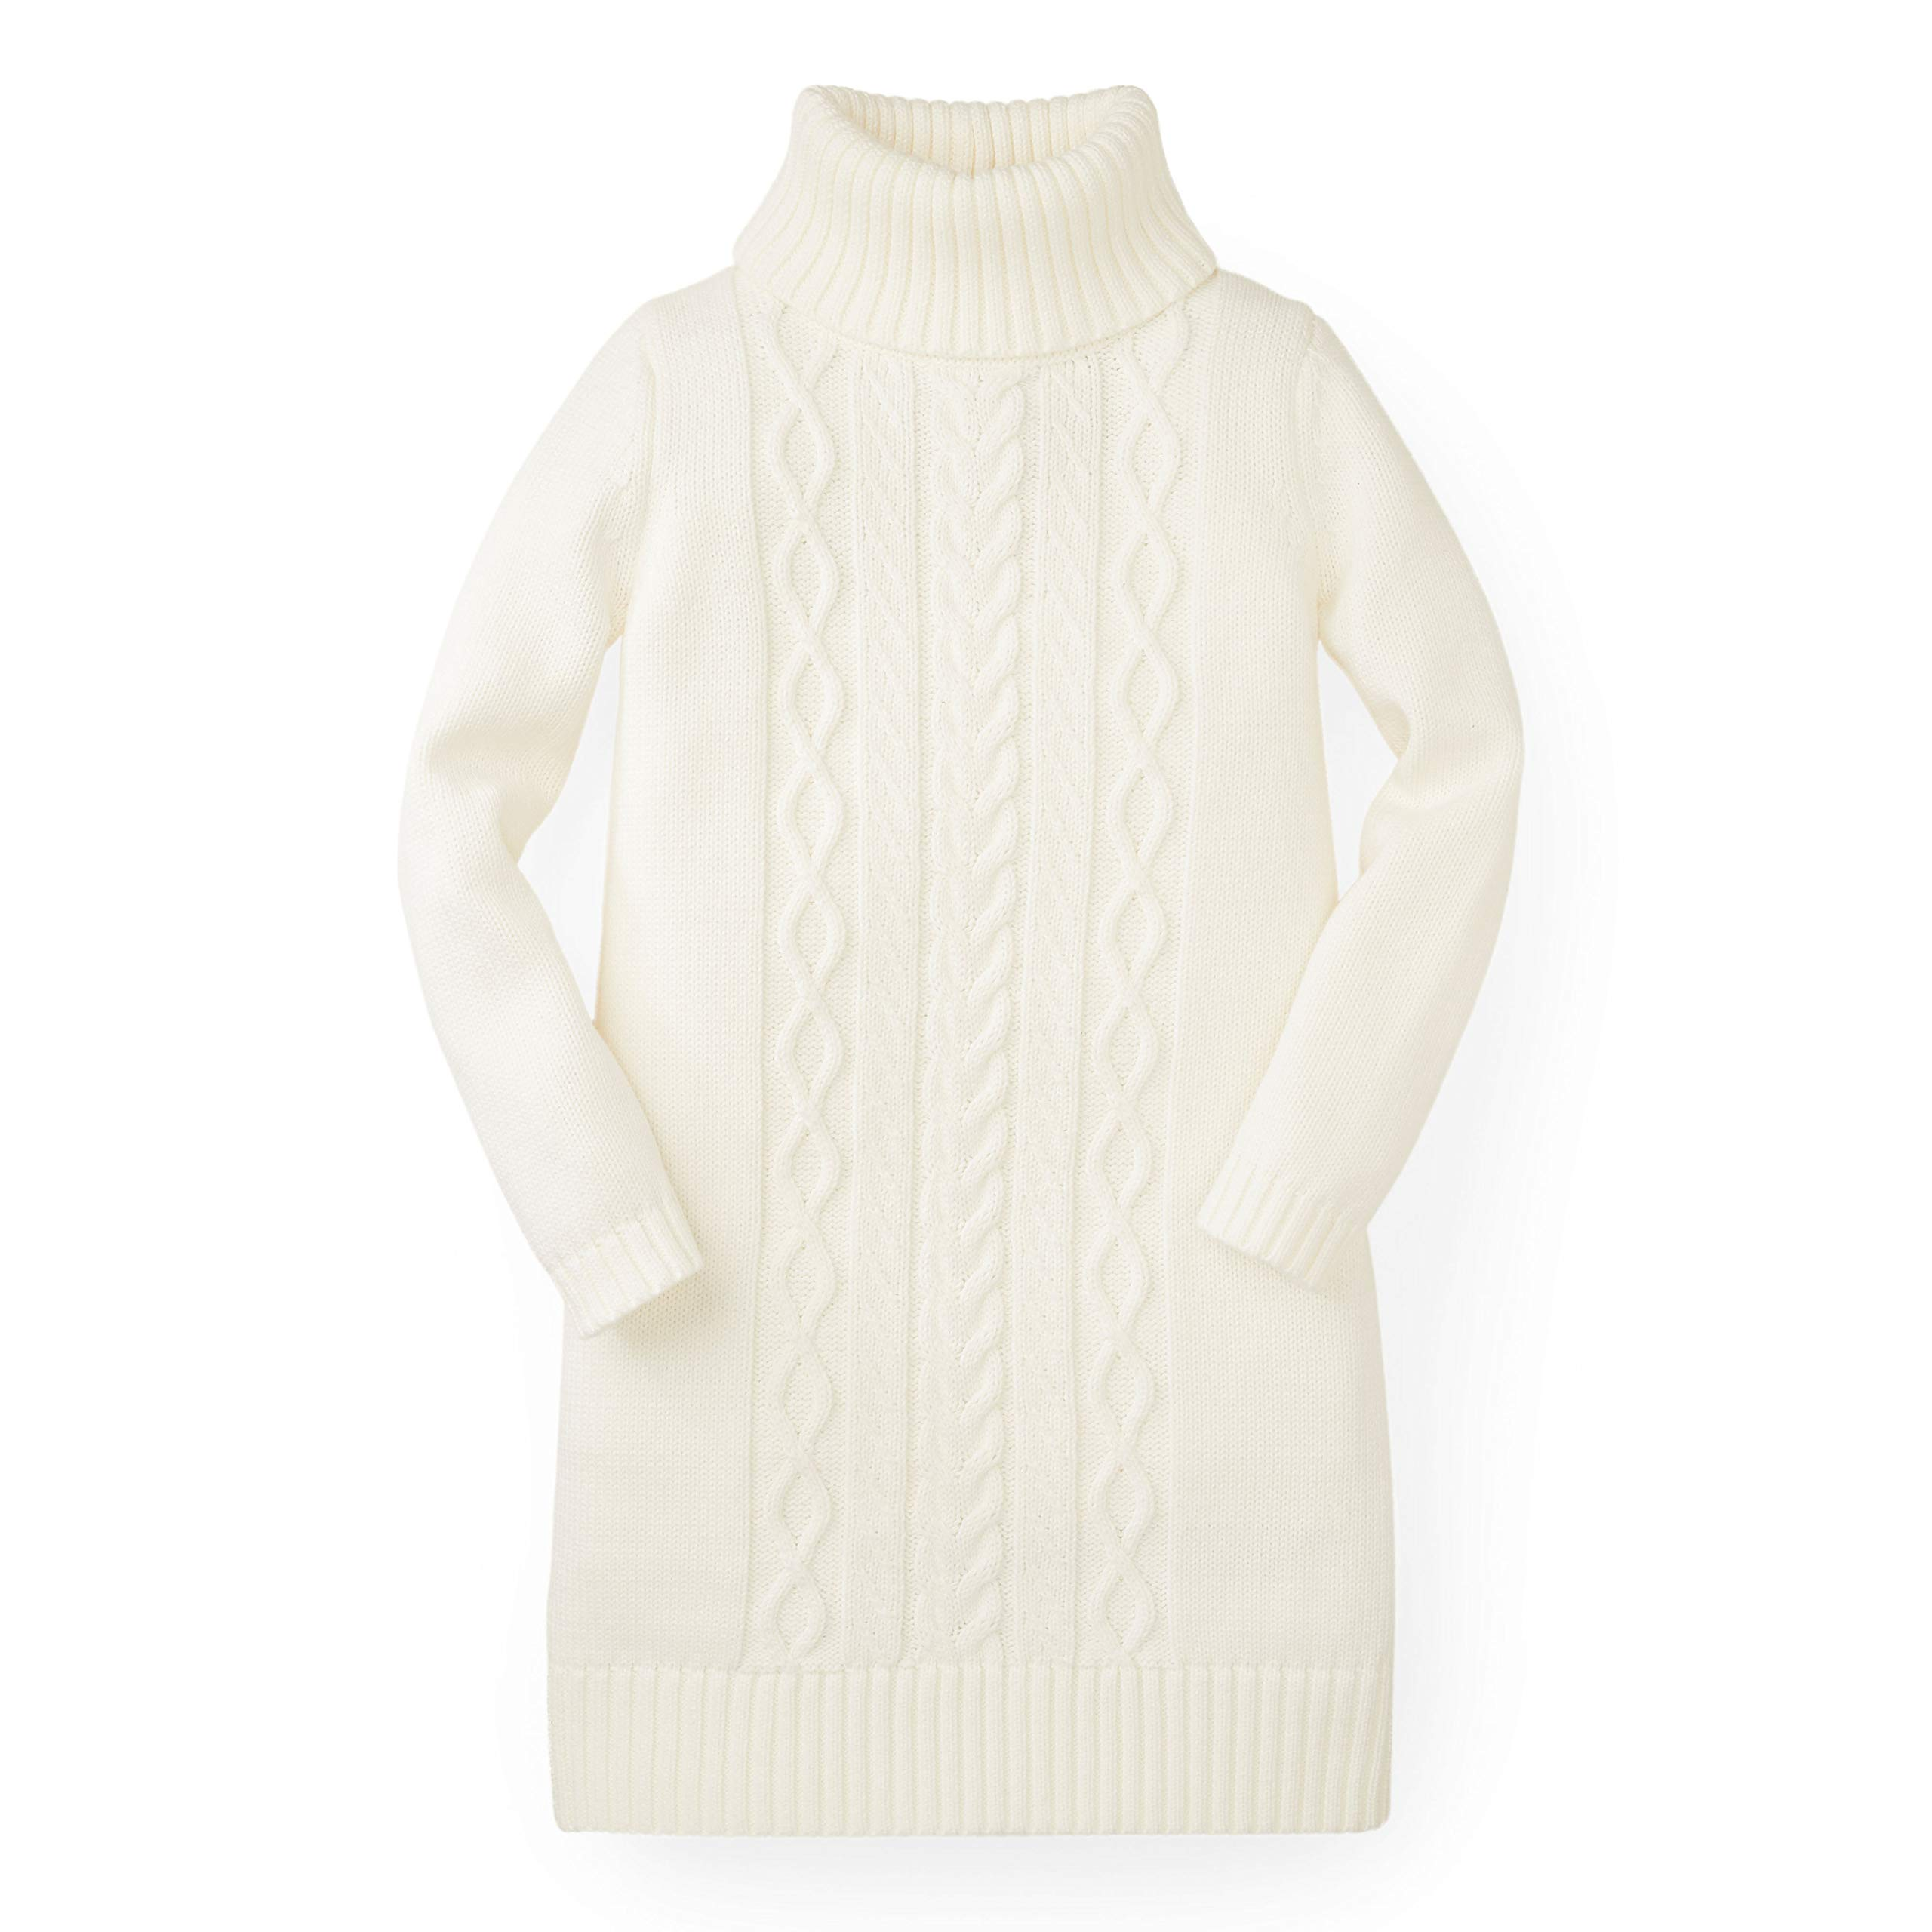 Hope & Henry Girls' White Turtleneck Sweater Dress Made with Organic Cotton